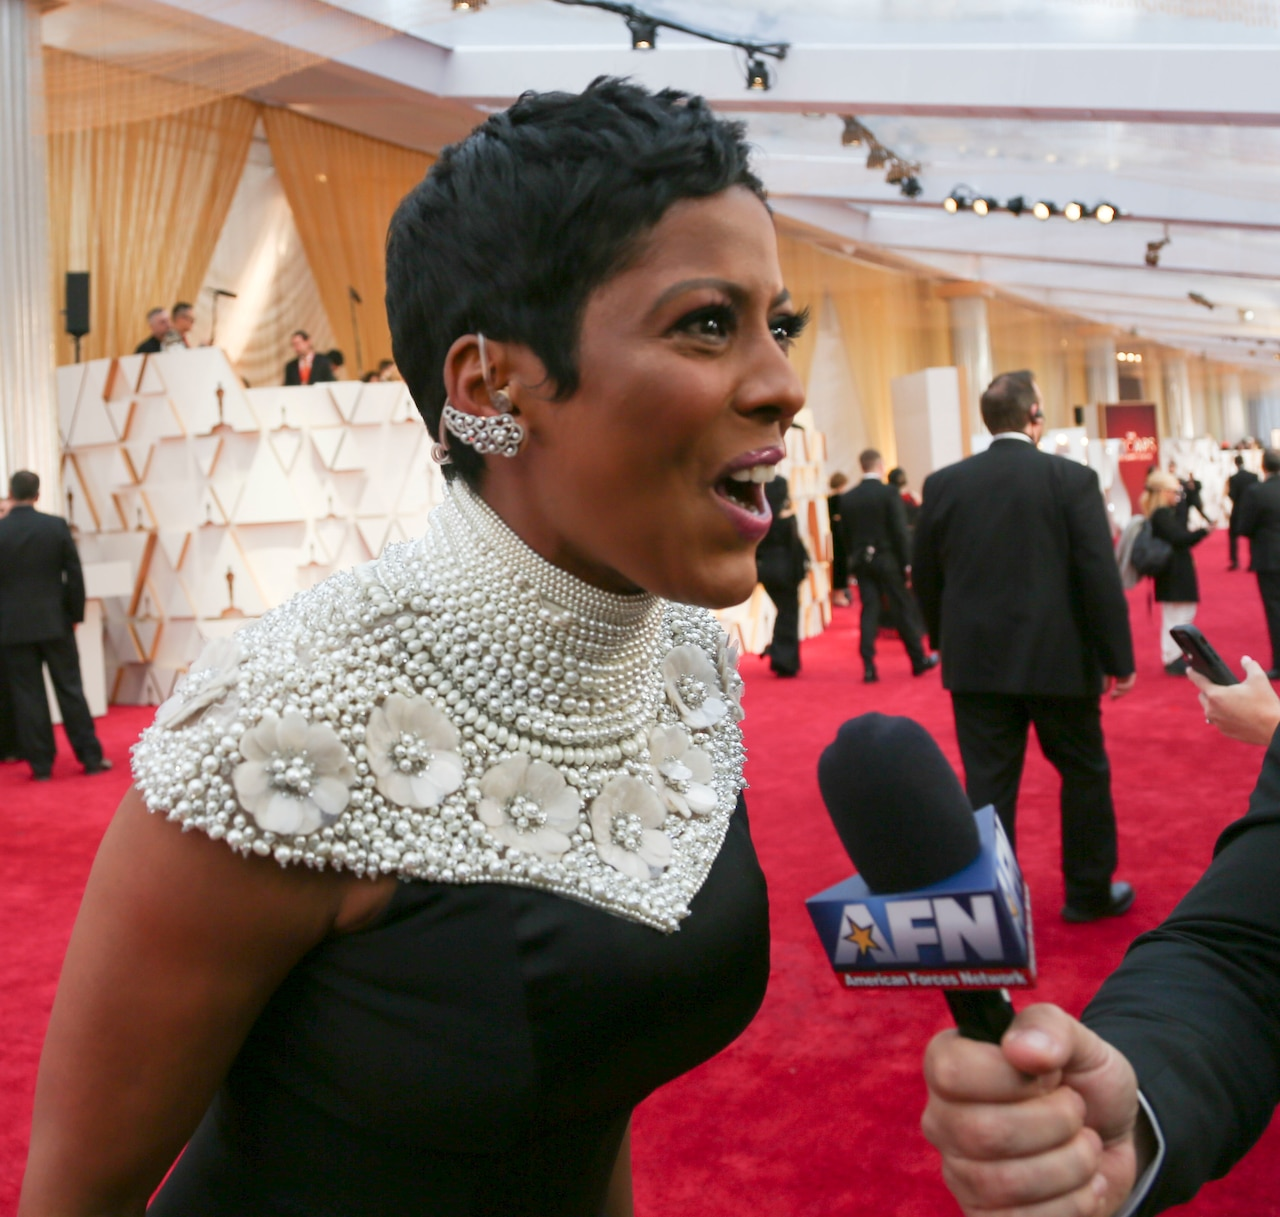 A woman in a black dress with pearl-beaded neckline talks to someone off-camera who's holding a microphone on a red carpet.